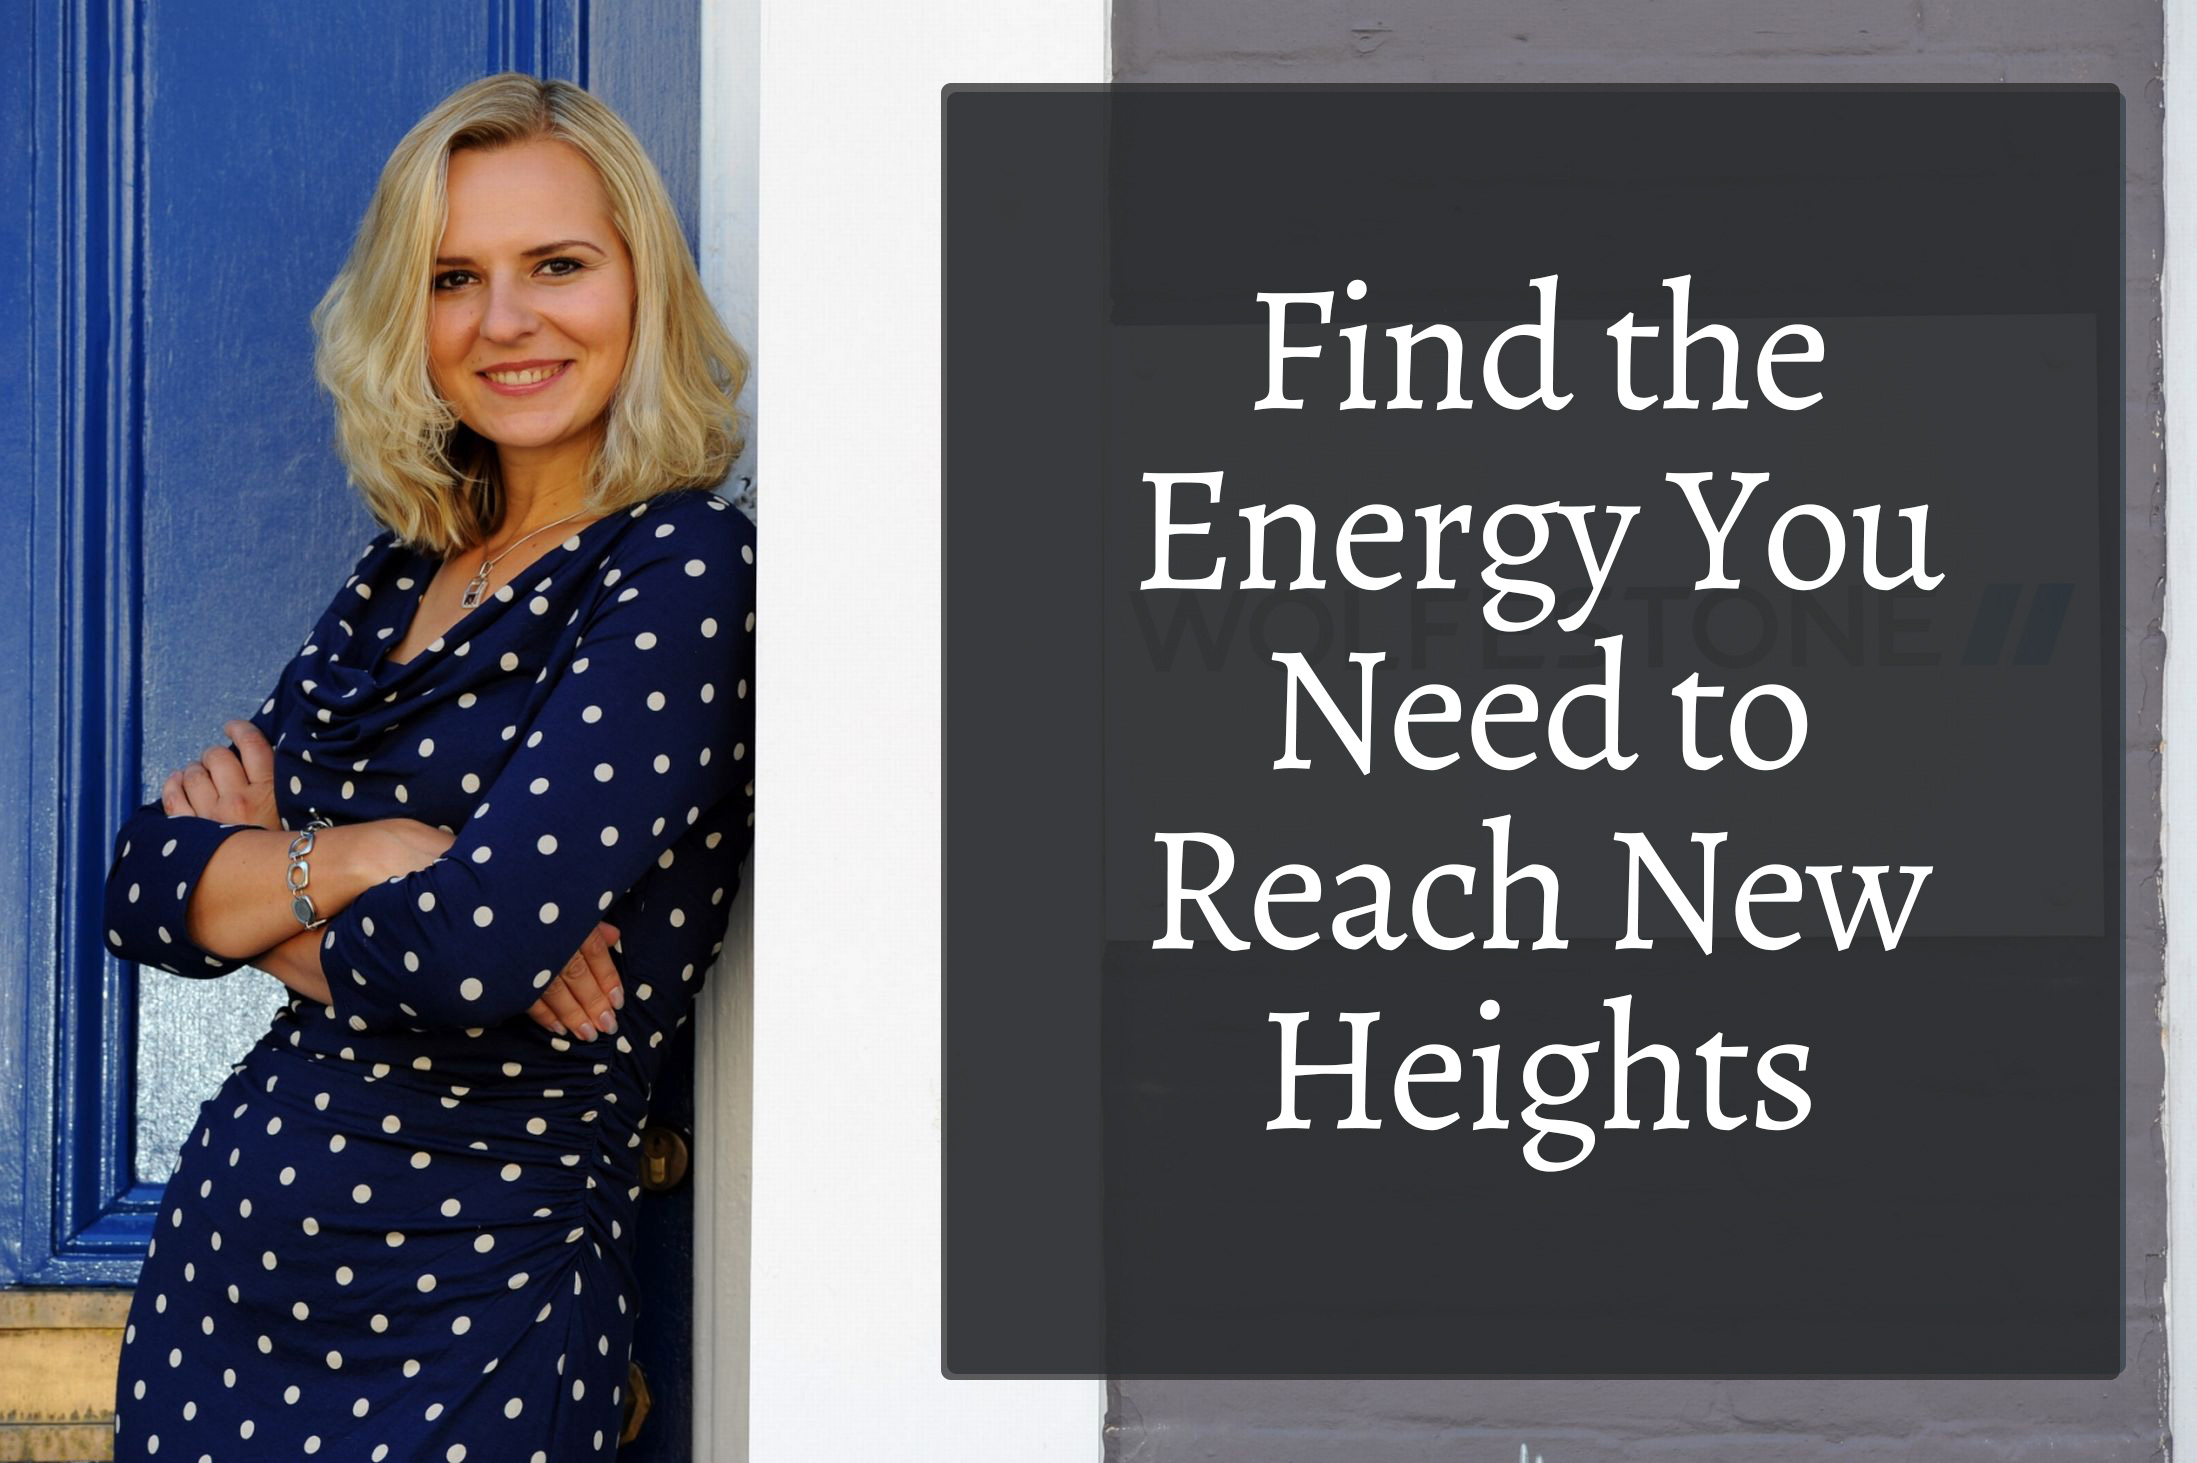 Find the Energy You need to Reach New Heights